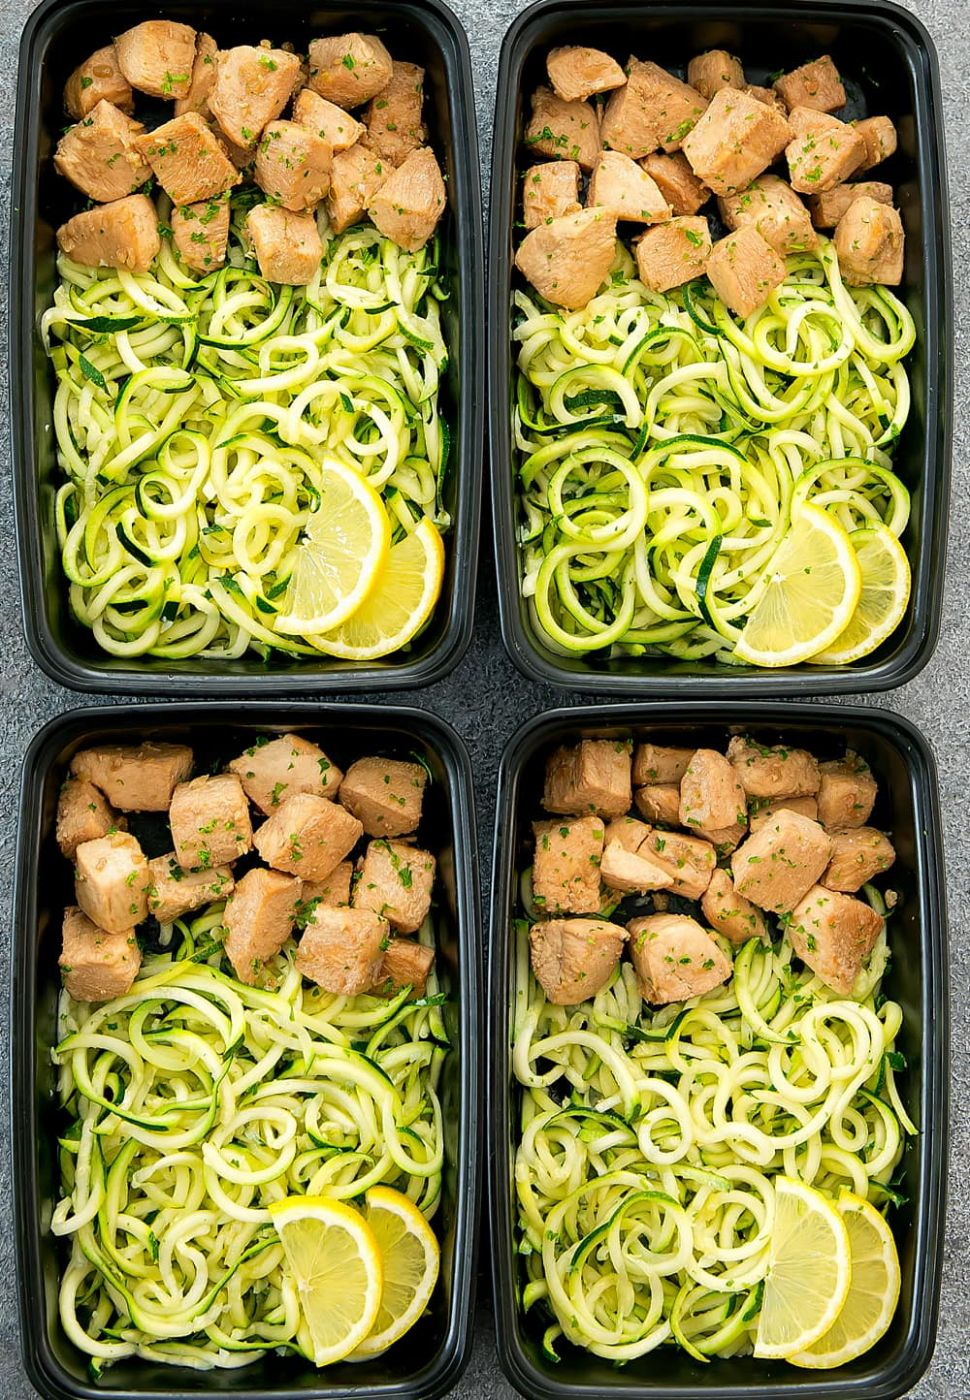 Lemon Garlic Chicken with Zucchini Noodles Meal Prep - Recipe Chicken Zucchini Pasta